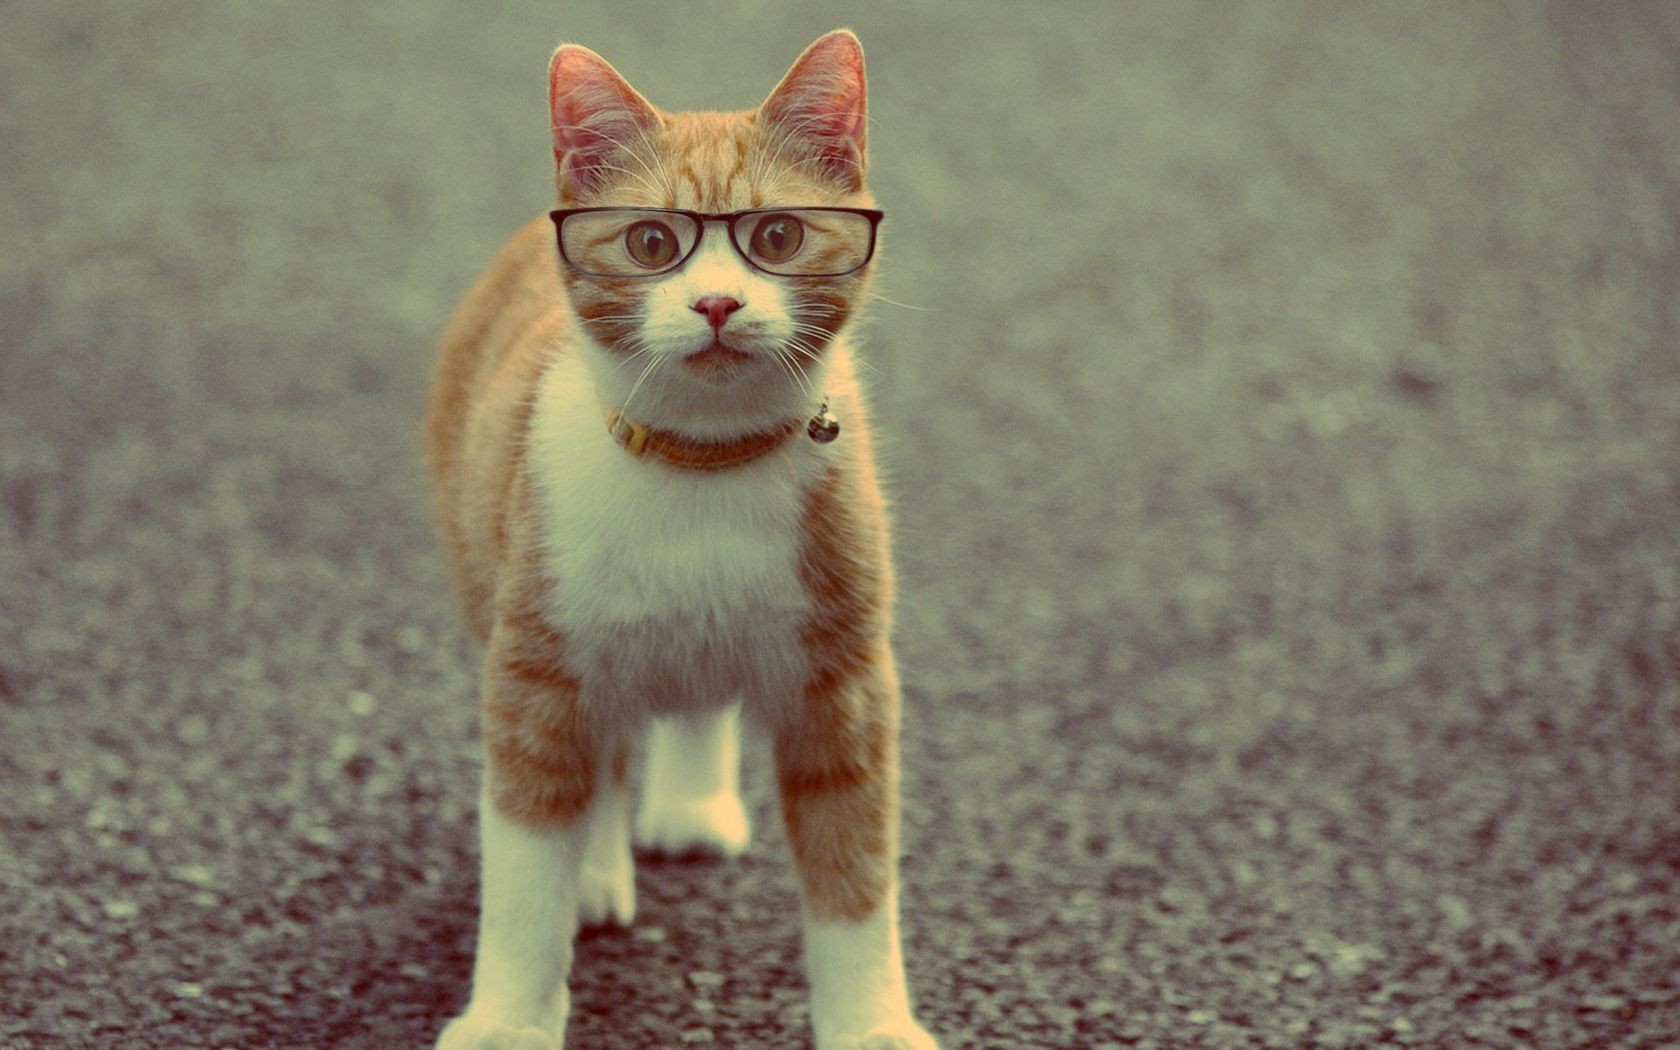 Cat Glasses Sunglasses IPhone Wallpapers For Free